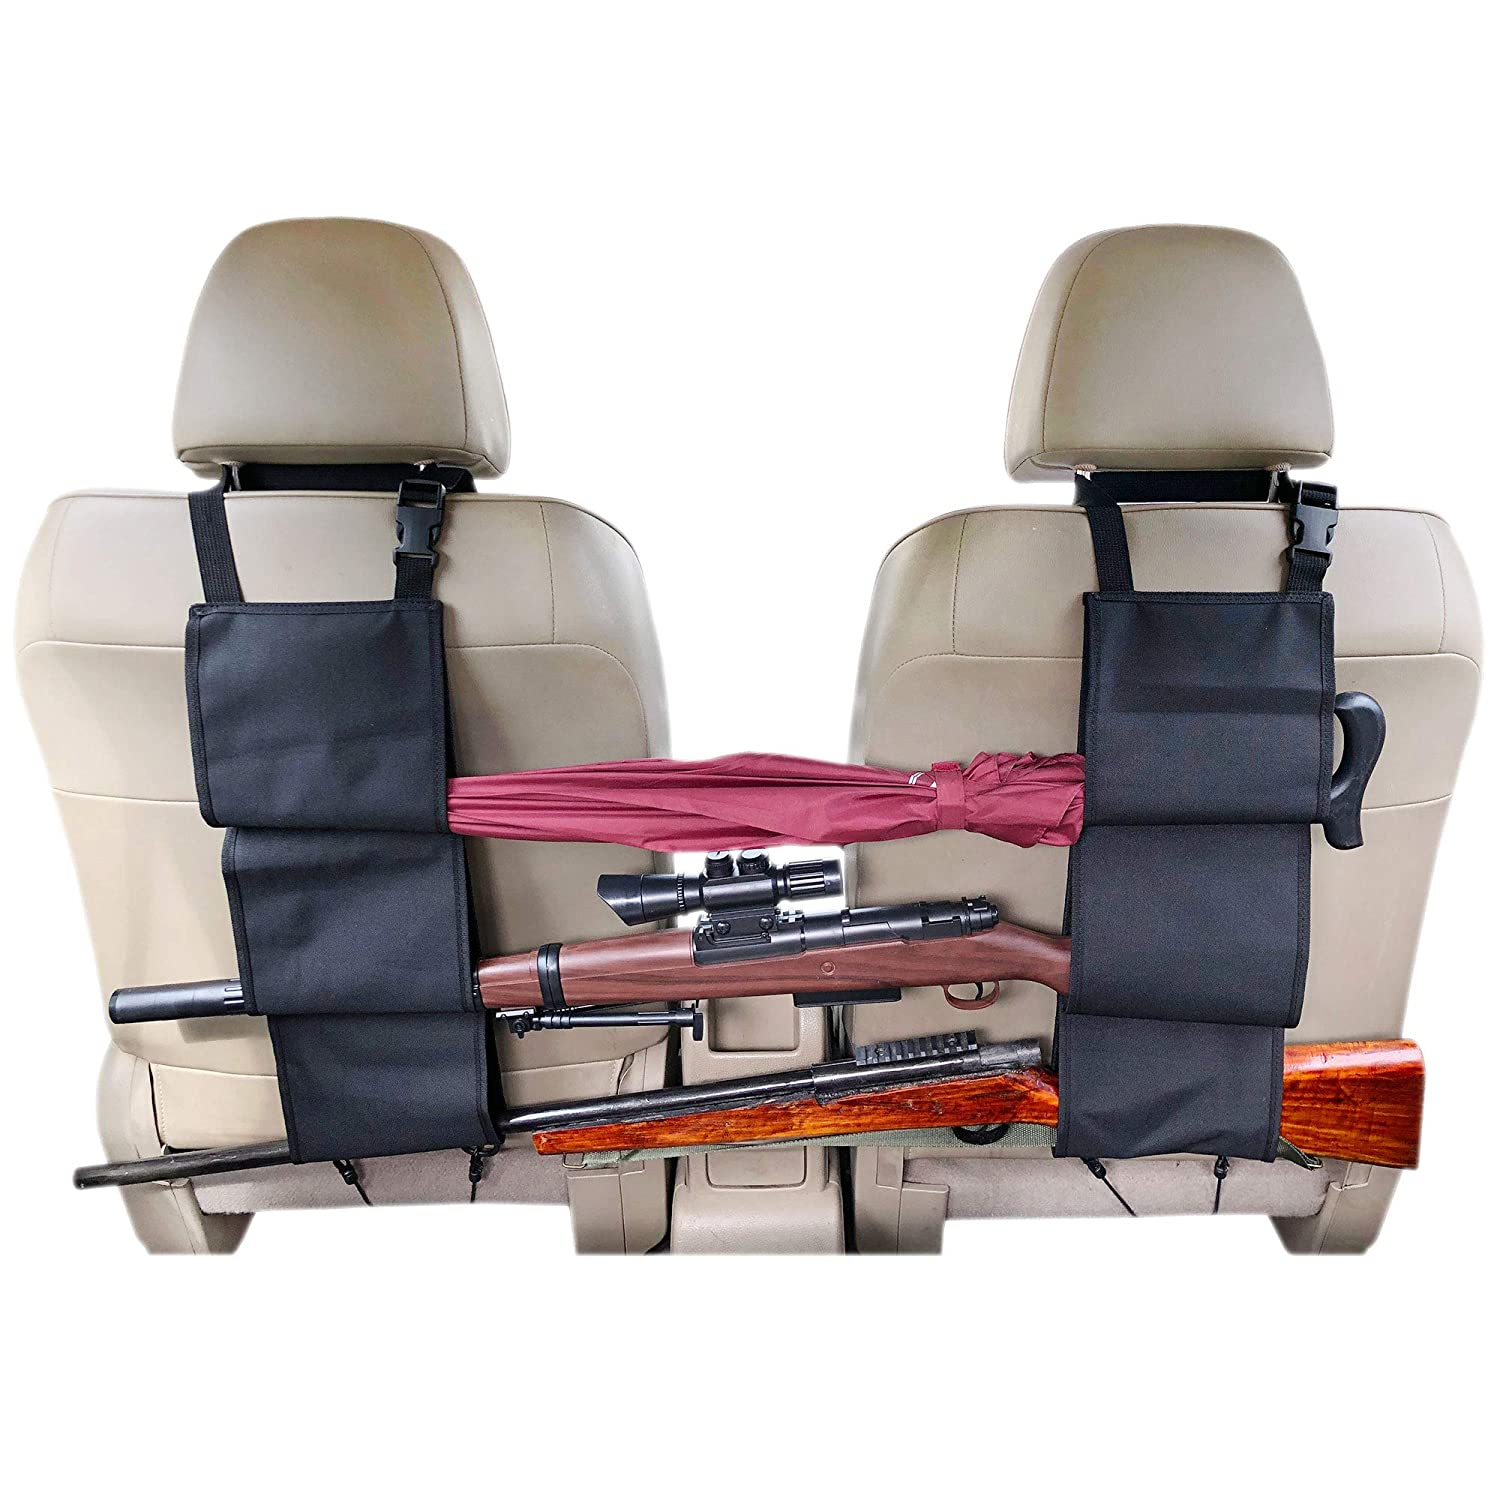 Lookaka Truck Gun Rack to Hold 3 Rifles on The Car Concealed Seat Back, Work to Jeep/Sedans/Pickup/Trucks/SUV/Mini Vans and More